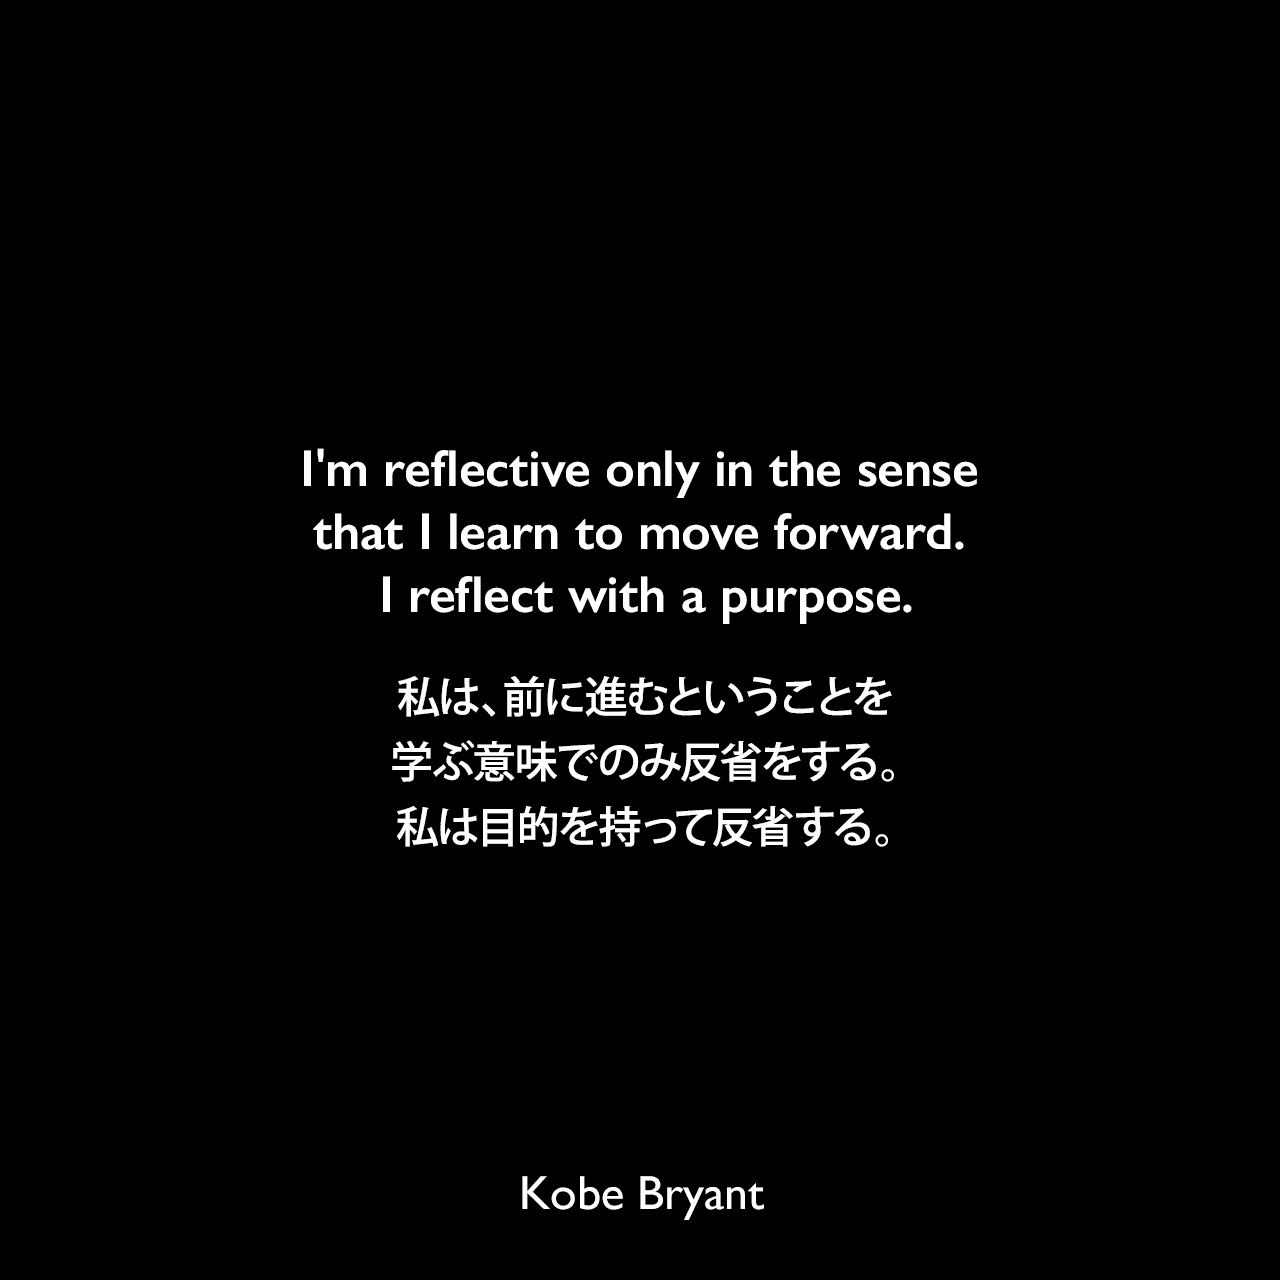 I'm reflective only in the sense that I learn to move forward. I reflect with a purpose.私は、前に進むということを学ぶ意味でのみ反省をする。私は目的を持って反省する。Kobe Bryant